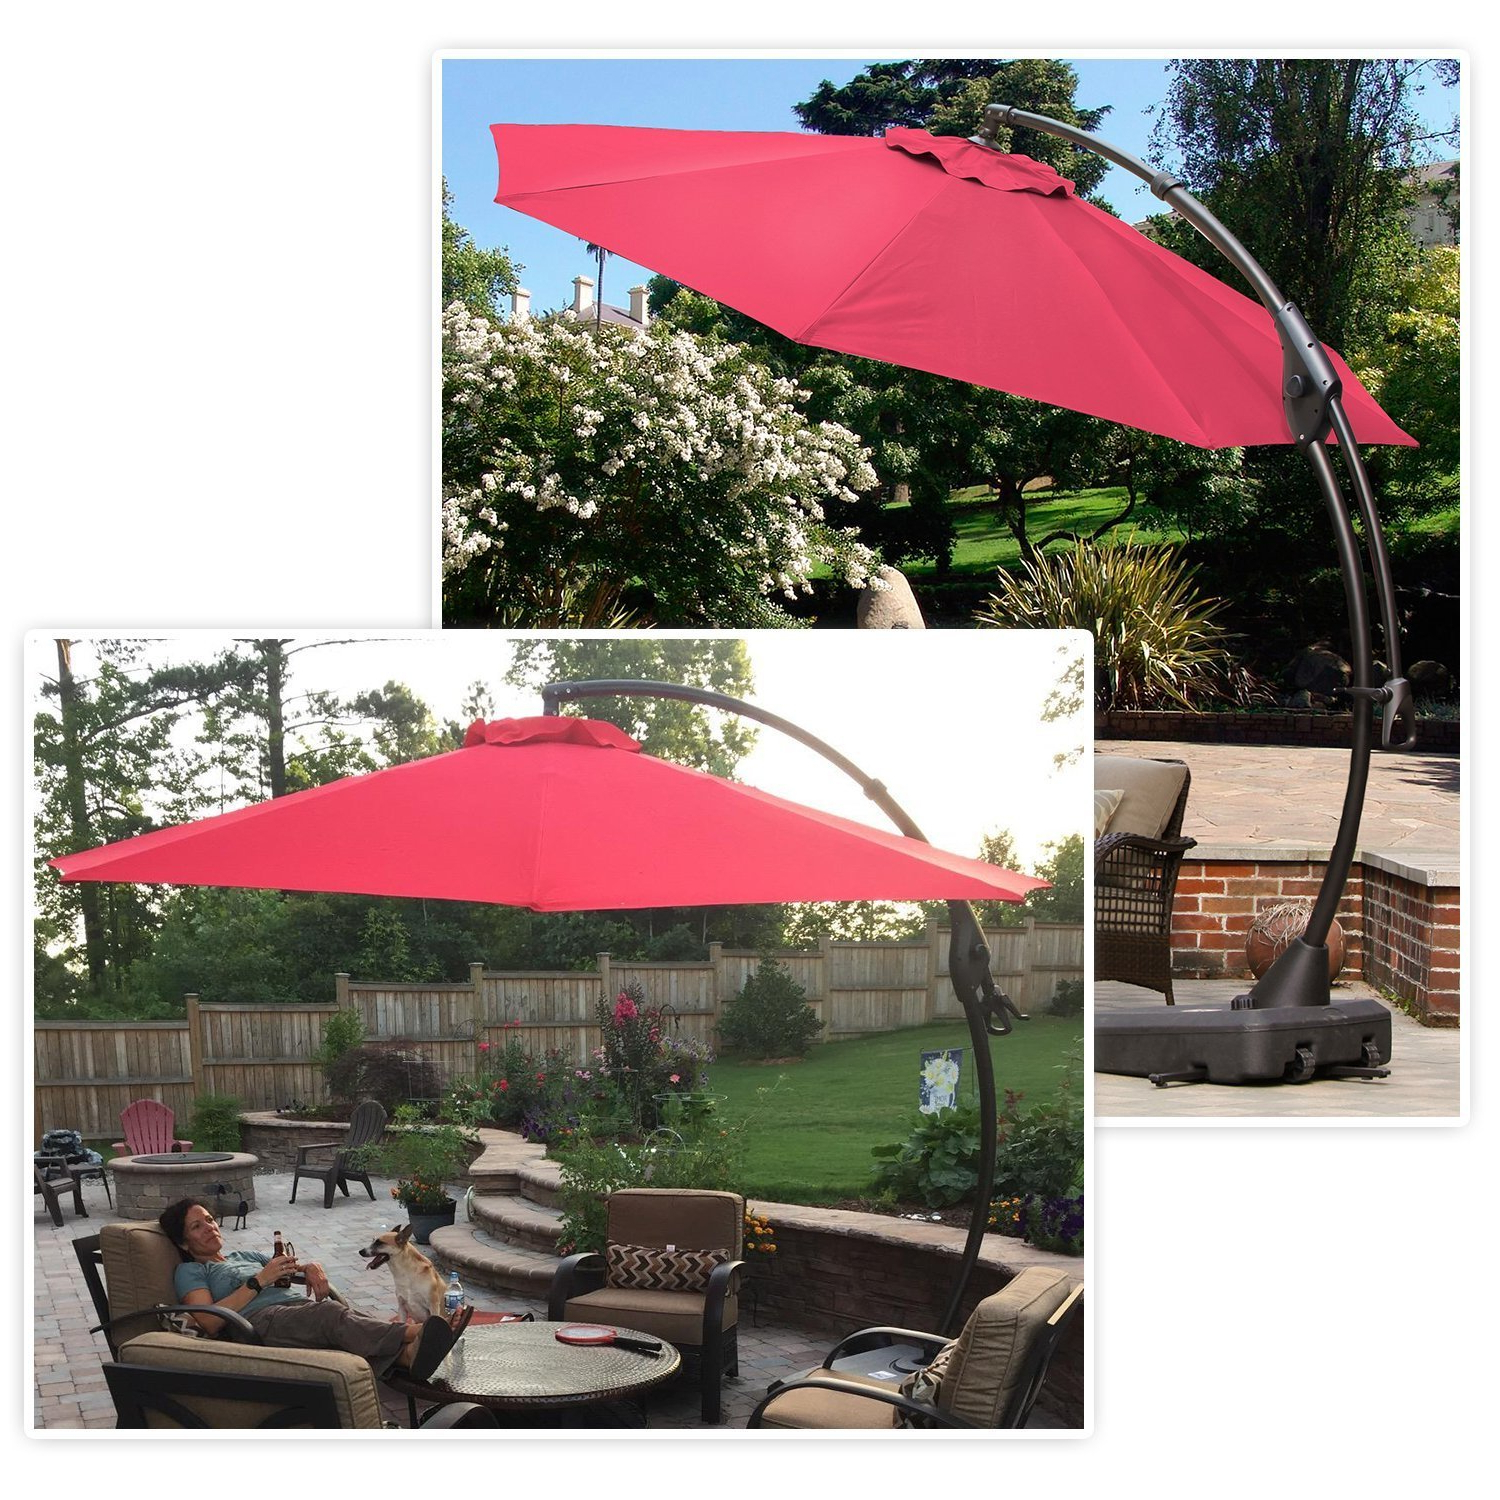 Preferred Melendy 10' Cantilever Umbrella Inside Phat Tommy Cantilever Umbrellas (View 6 of 20)